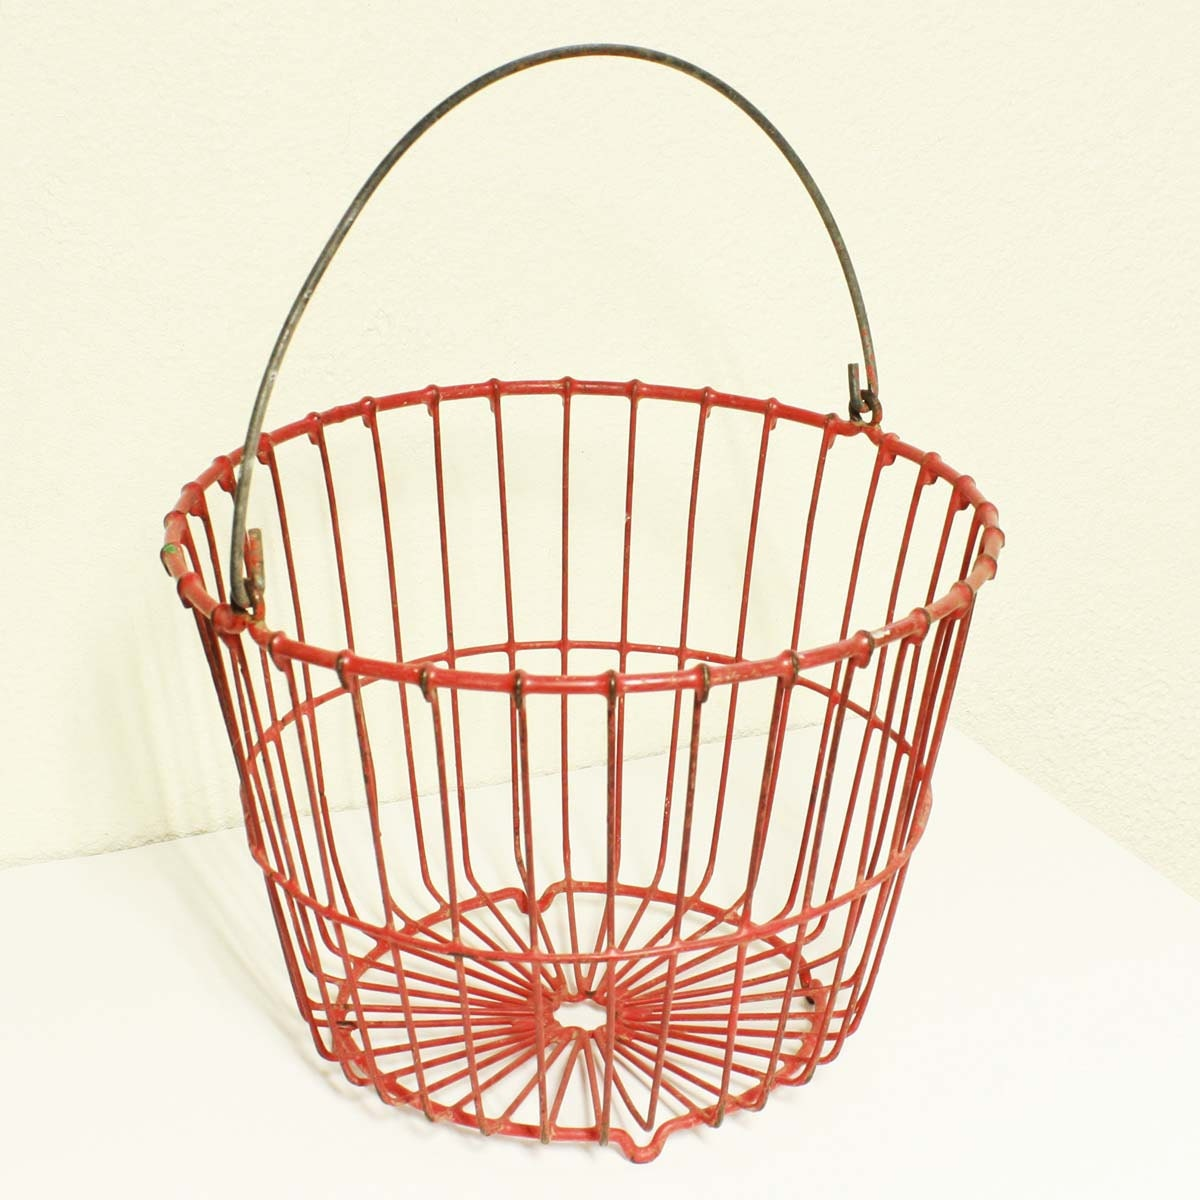 Discover metal wire basket at World Market, and thousands more unique finds from around the world. Free Shipping on qualifying orders.